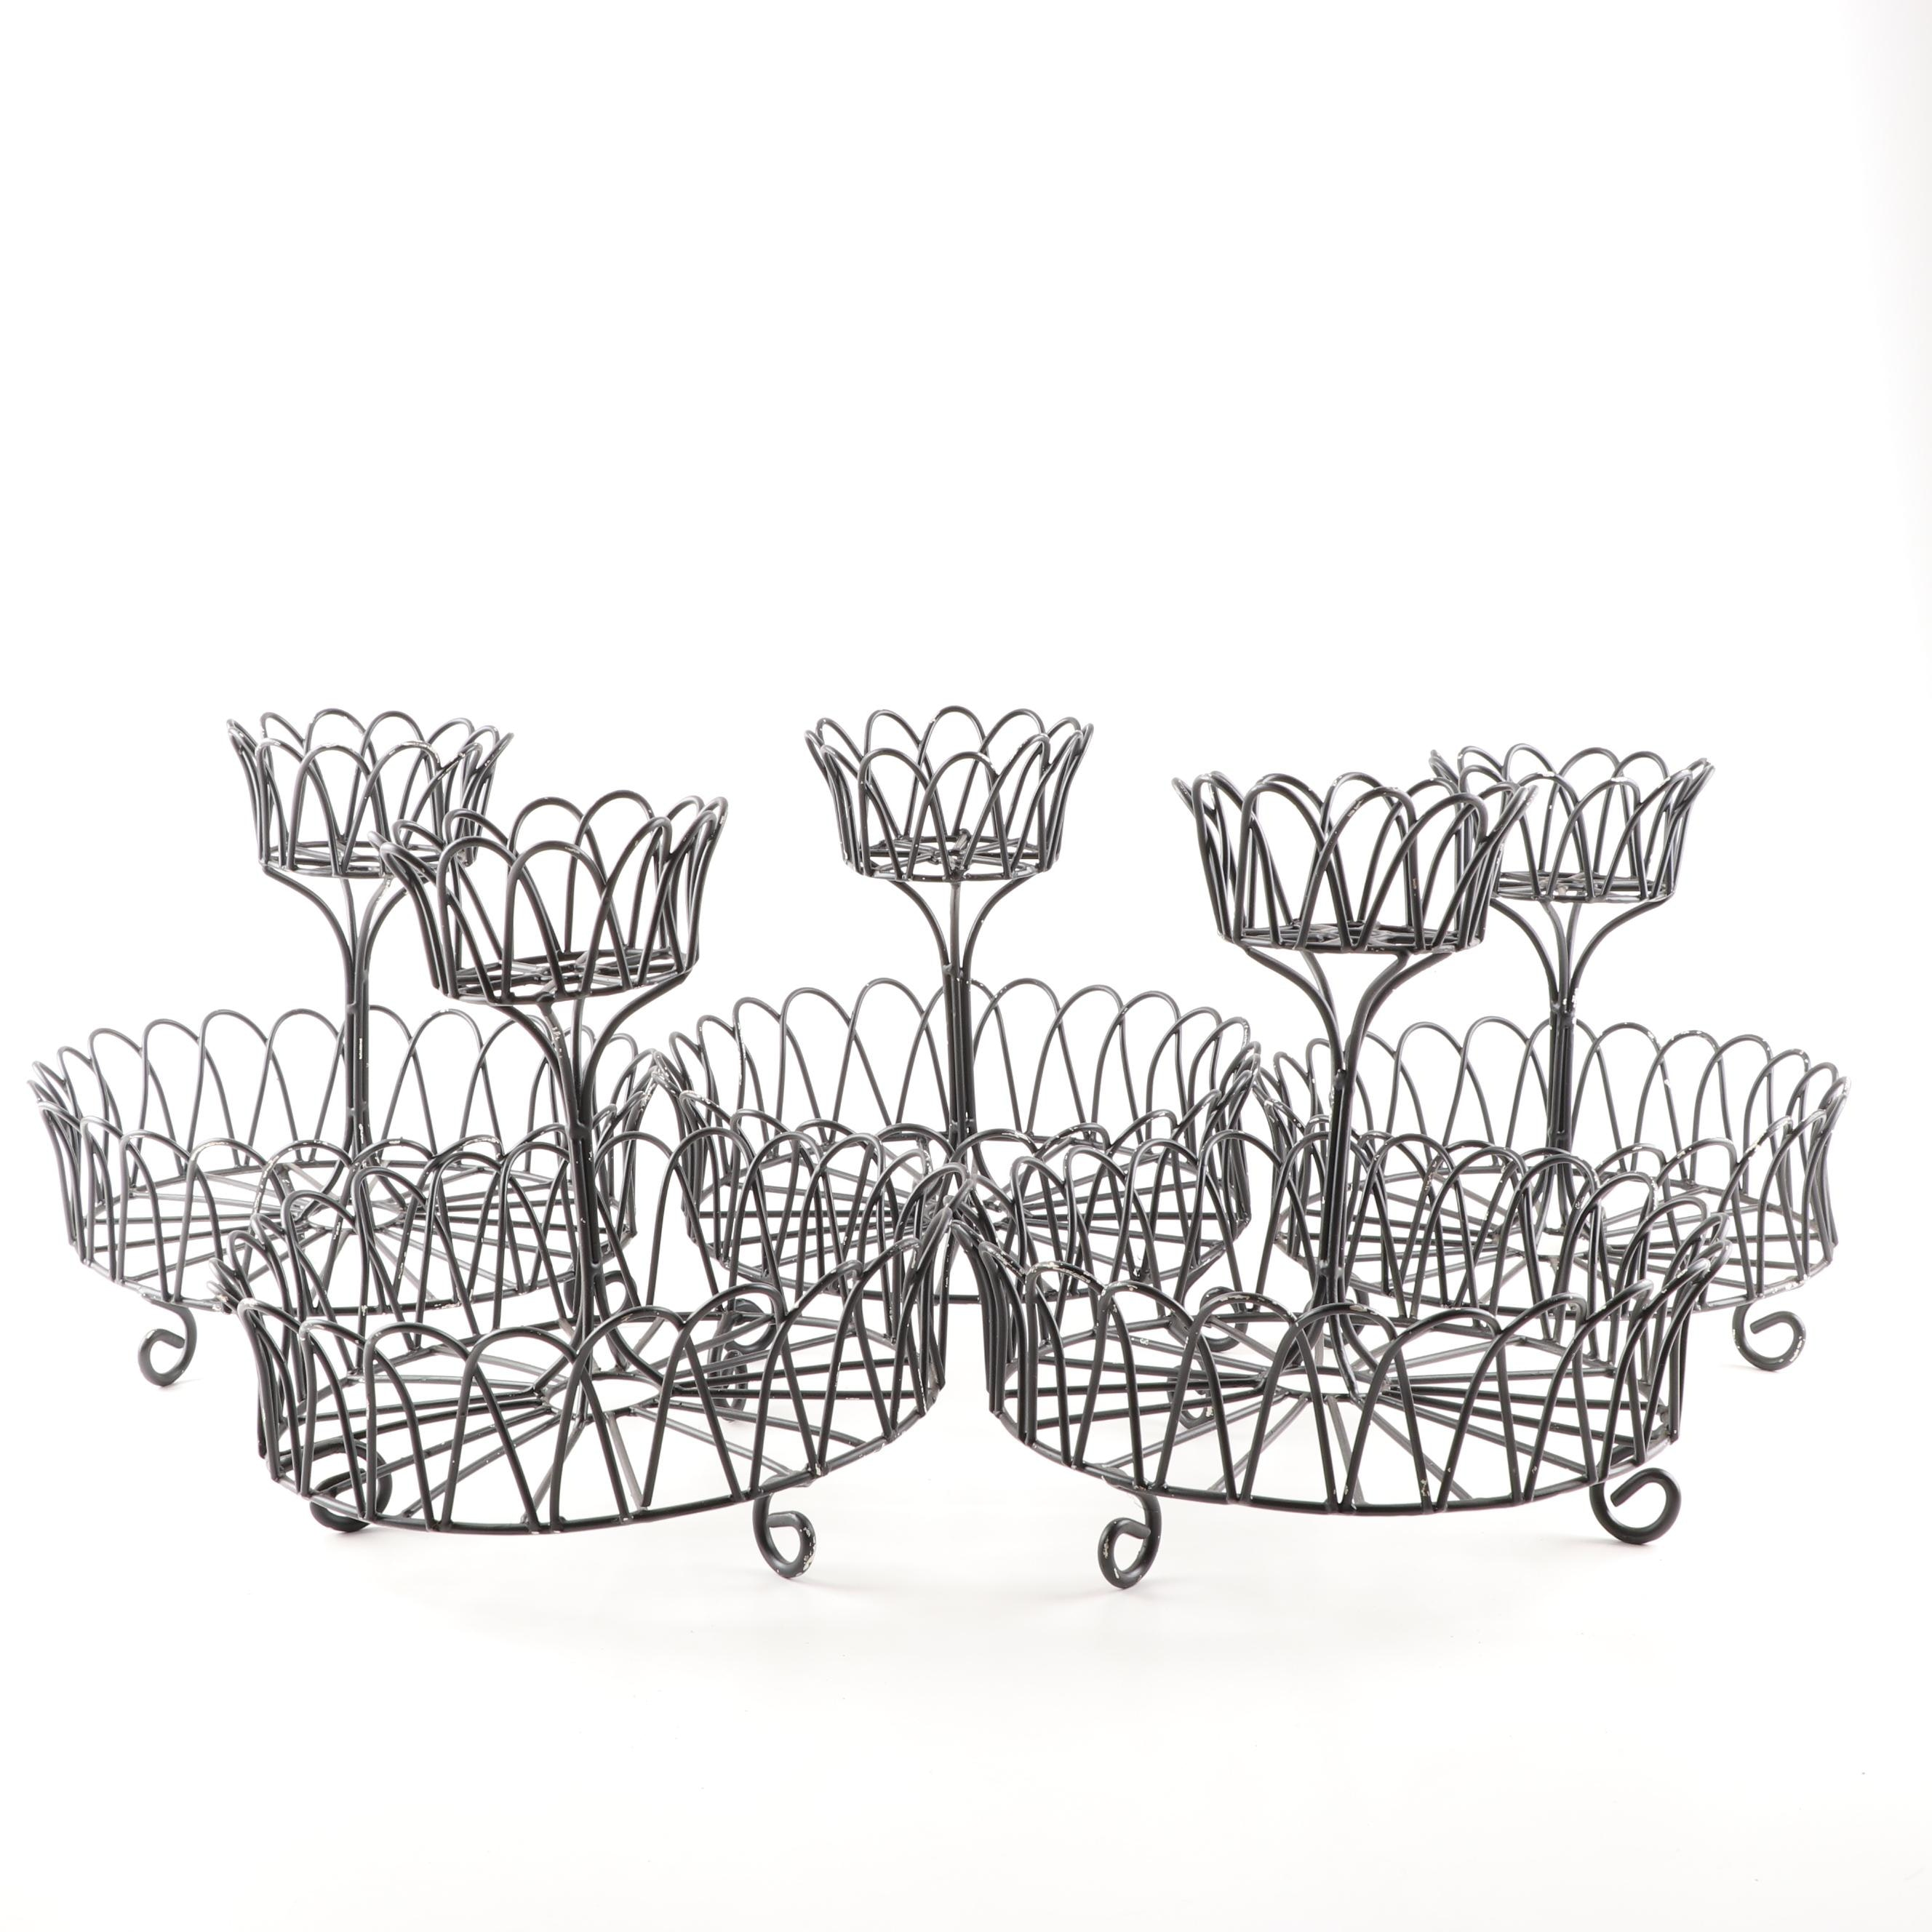 Grouping of Five Decorative Wire Fruit Stands